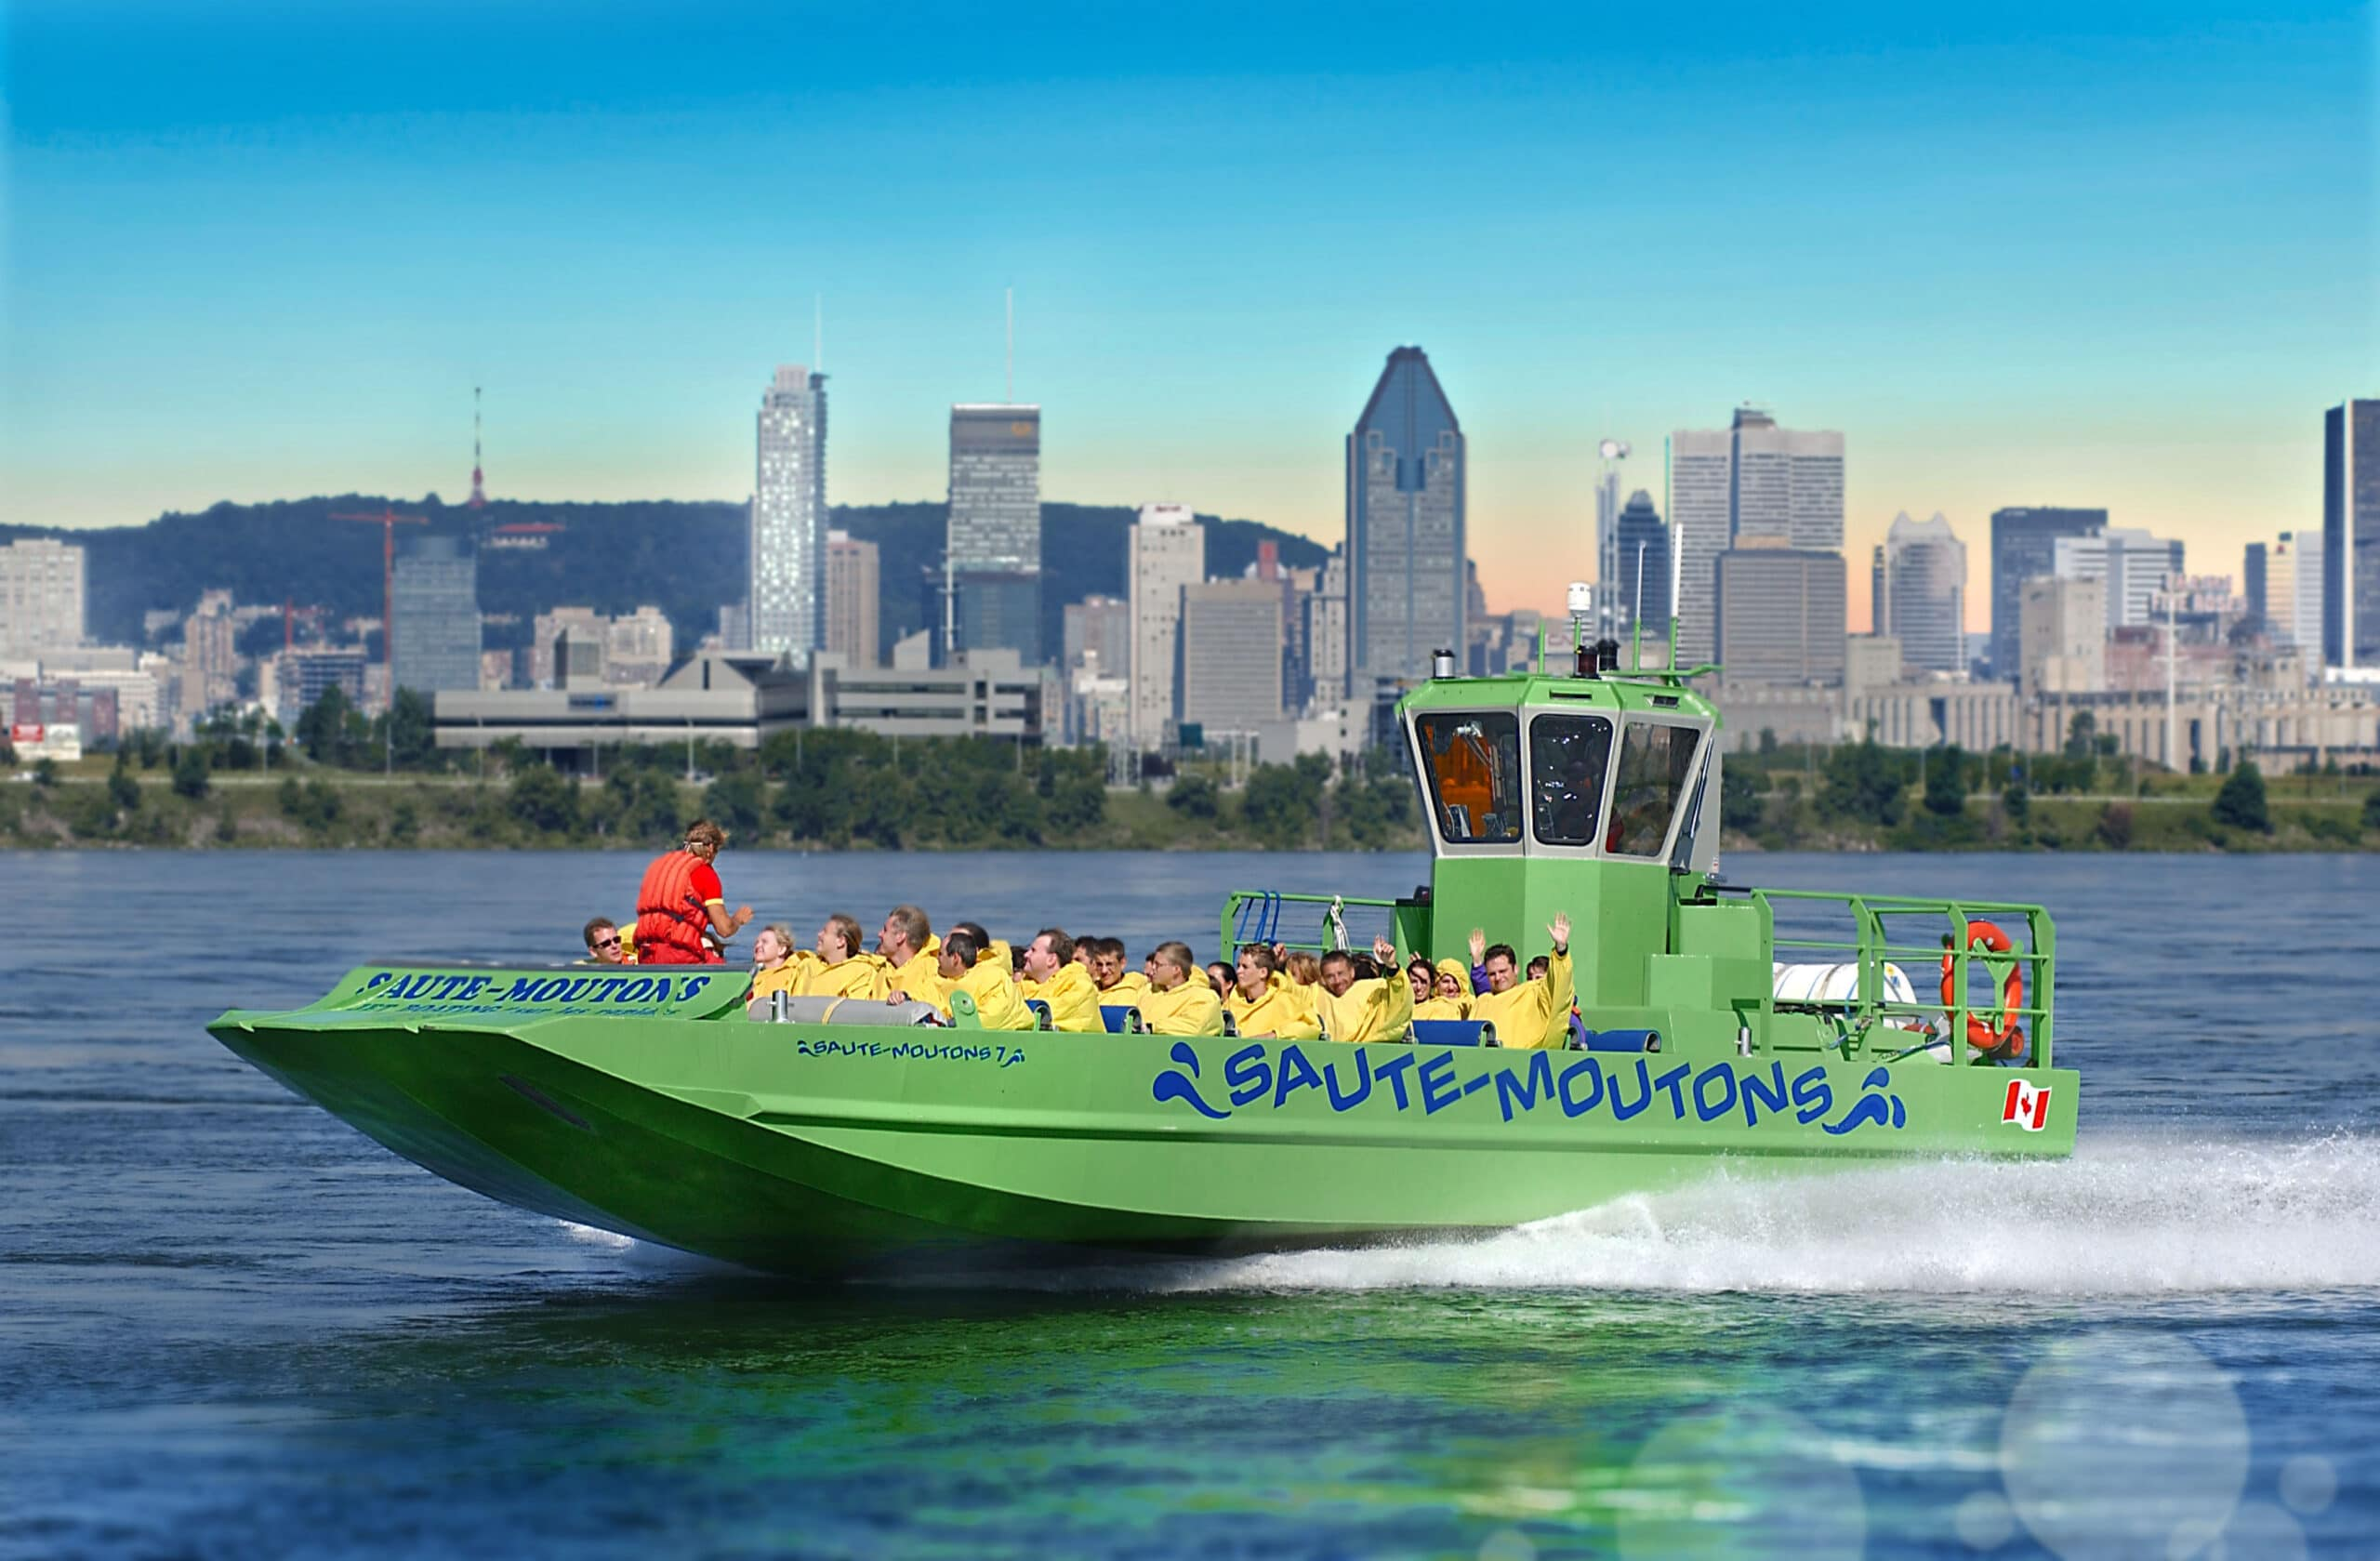 Saute-Moutons_green-boat-in-front-of-Montreal-landscape